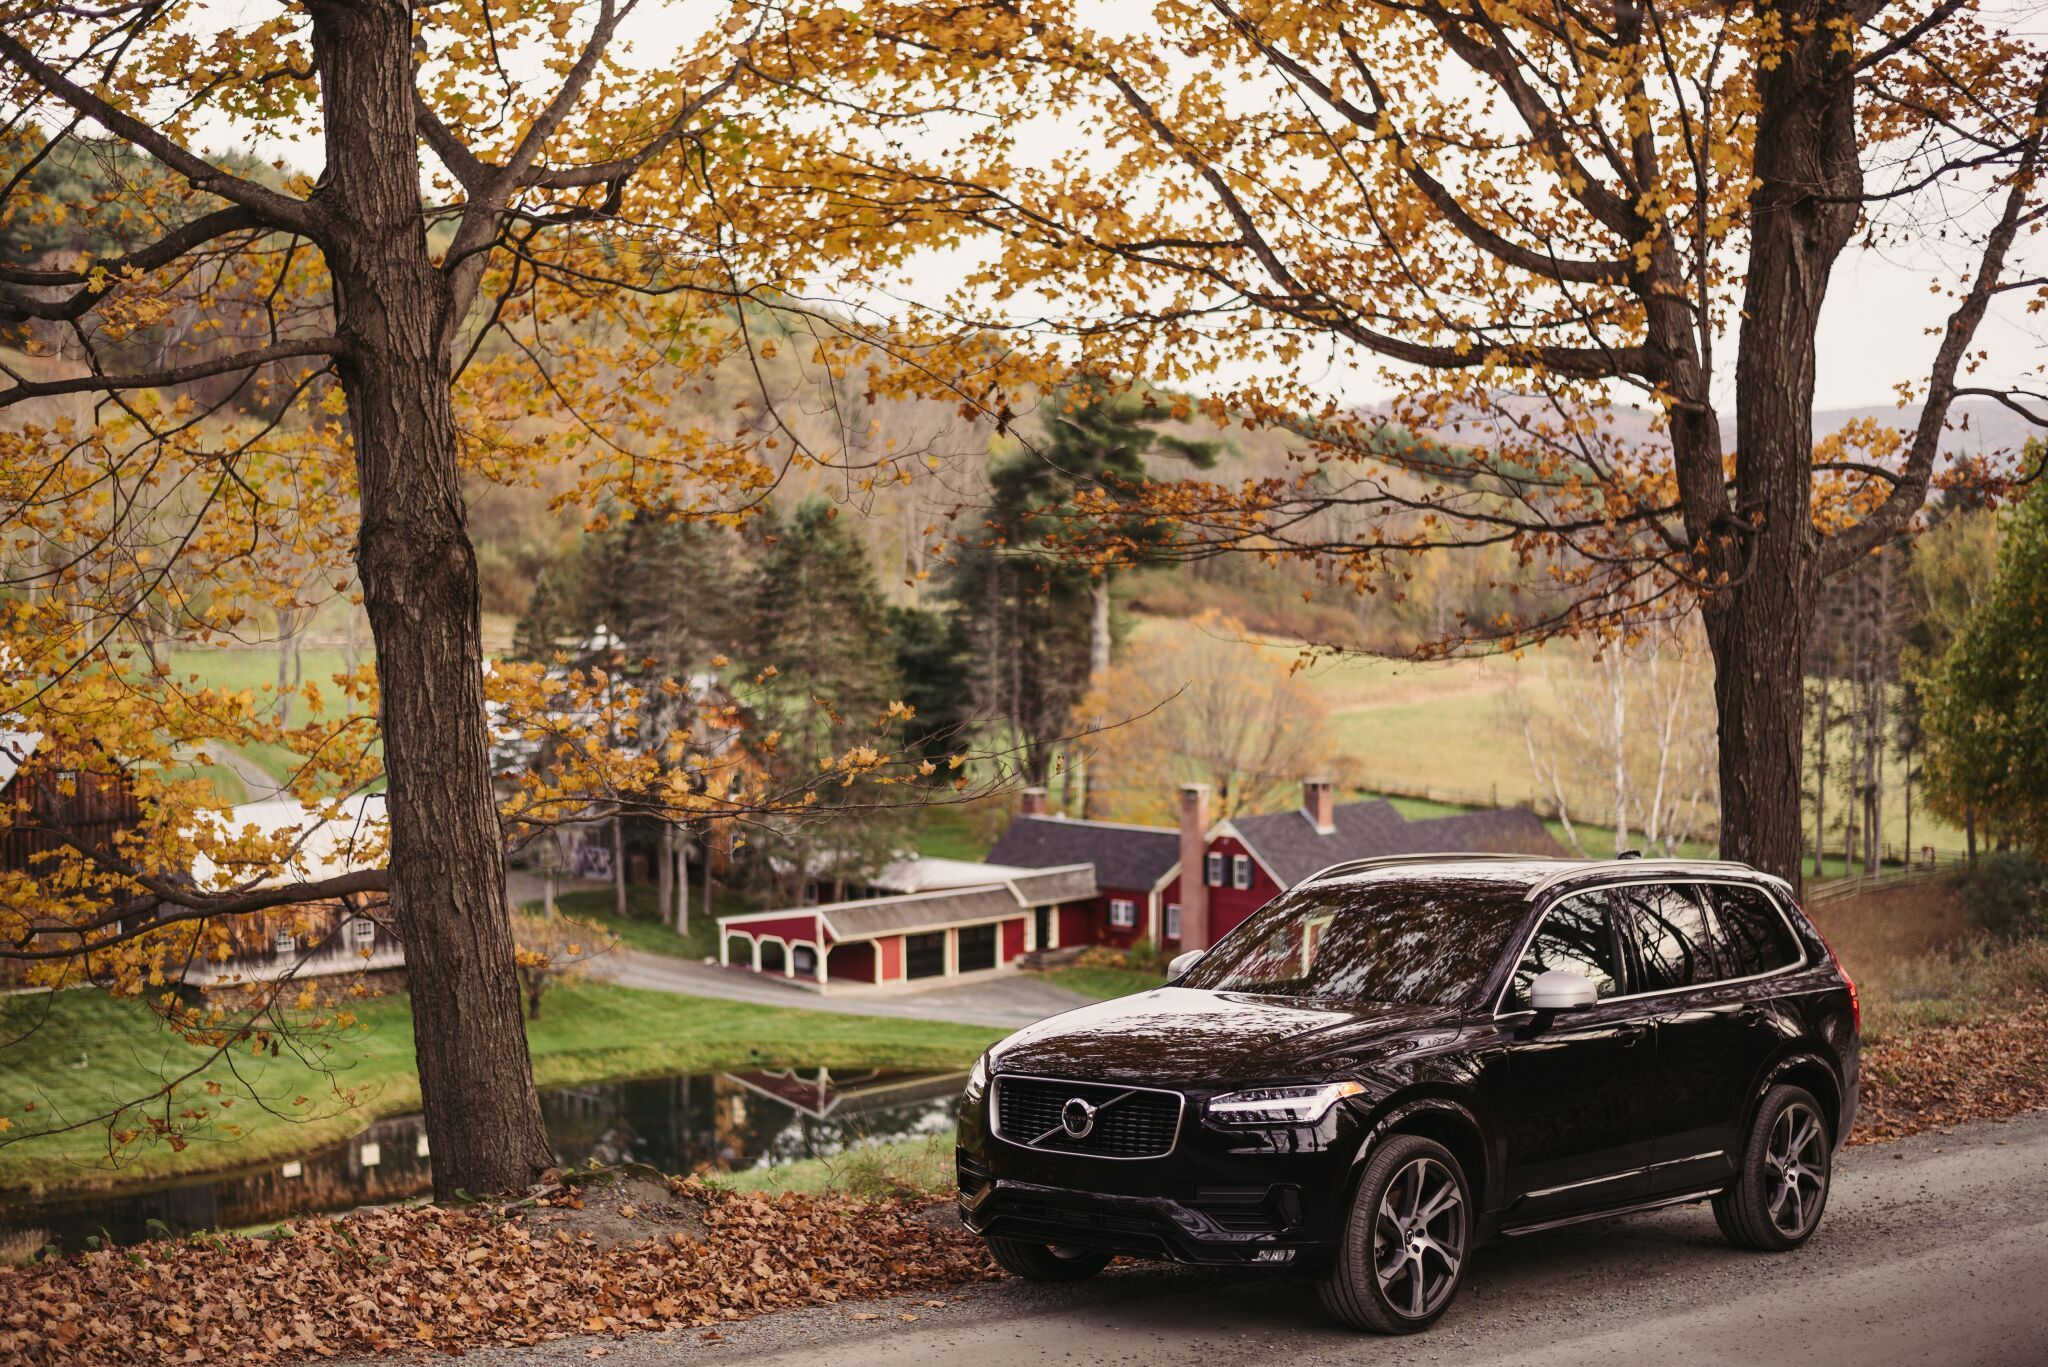 The Black On Black Volvo Xc90 T6 R Design Is Both Sporty And Sophisticated As It Explores Vermont In The Fall Volvo Xc90 Volvo Volvo Cars